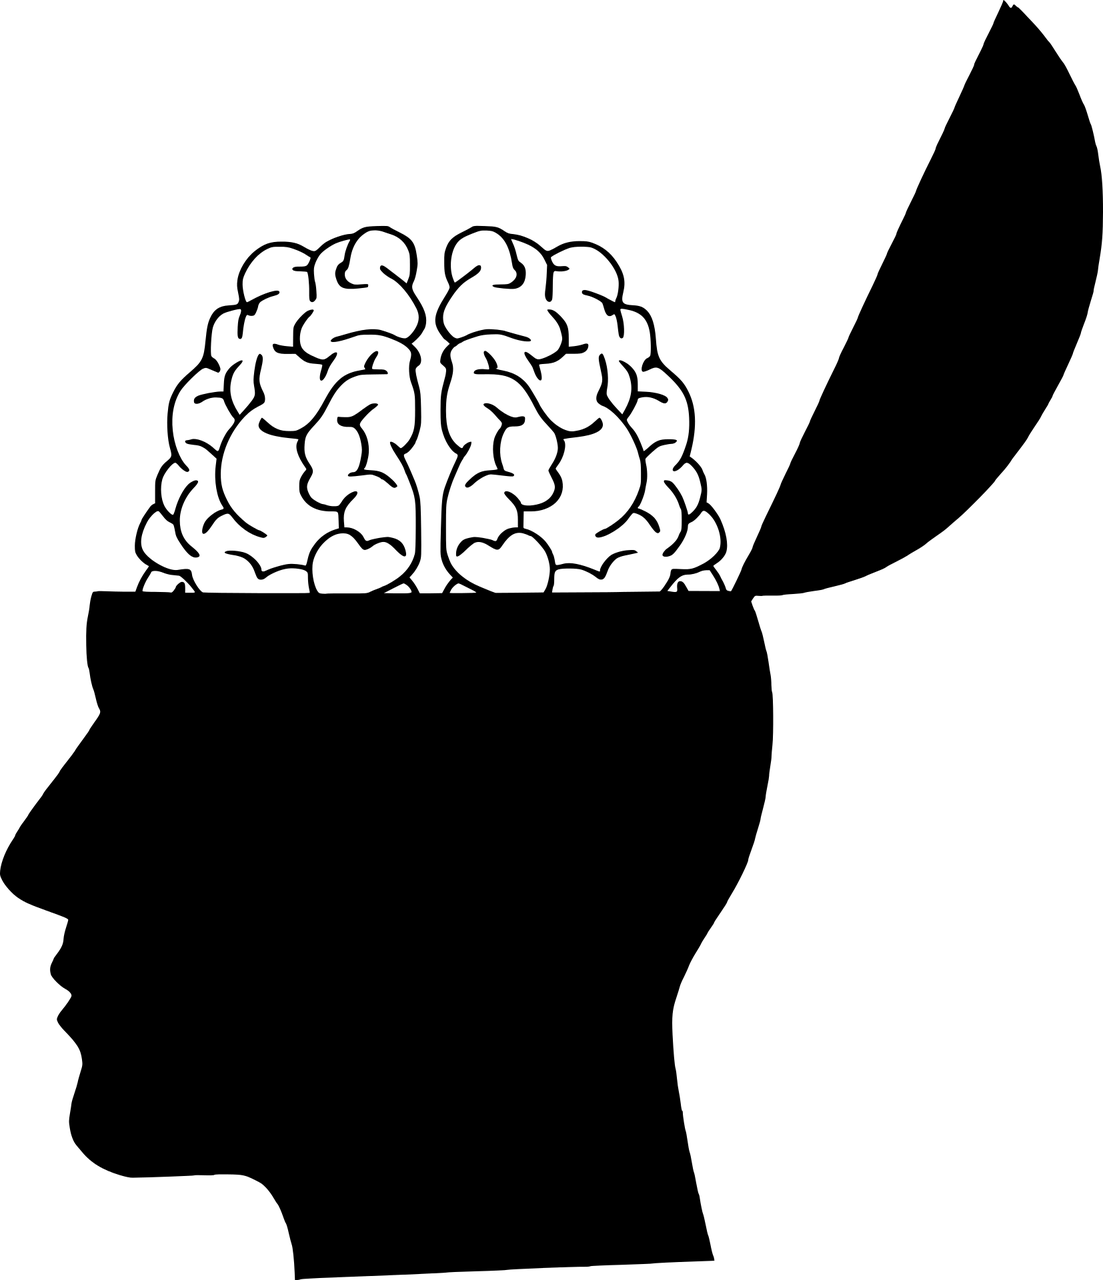 brain, head, silhouette